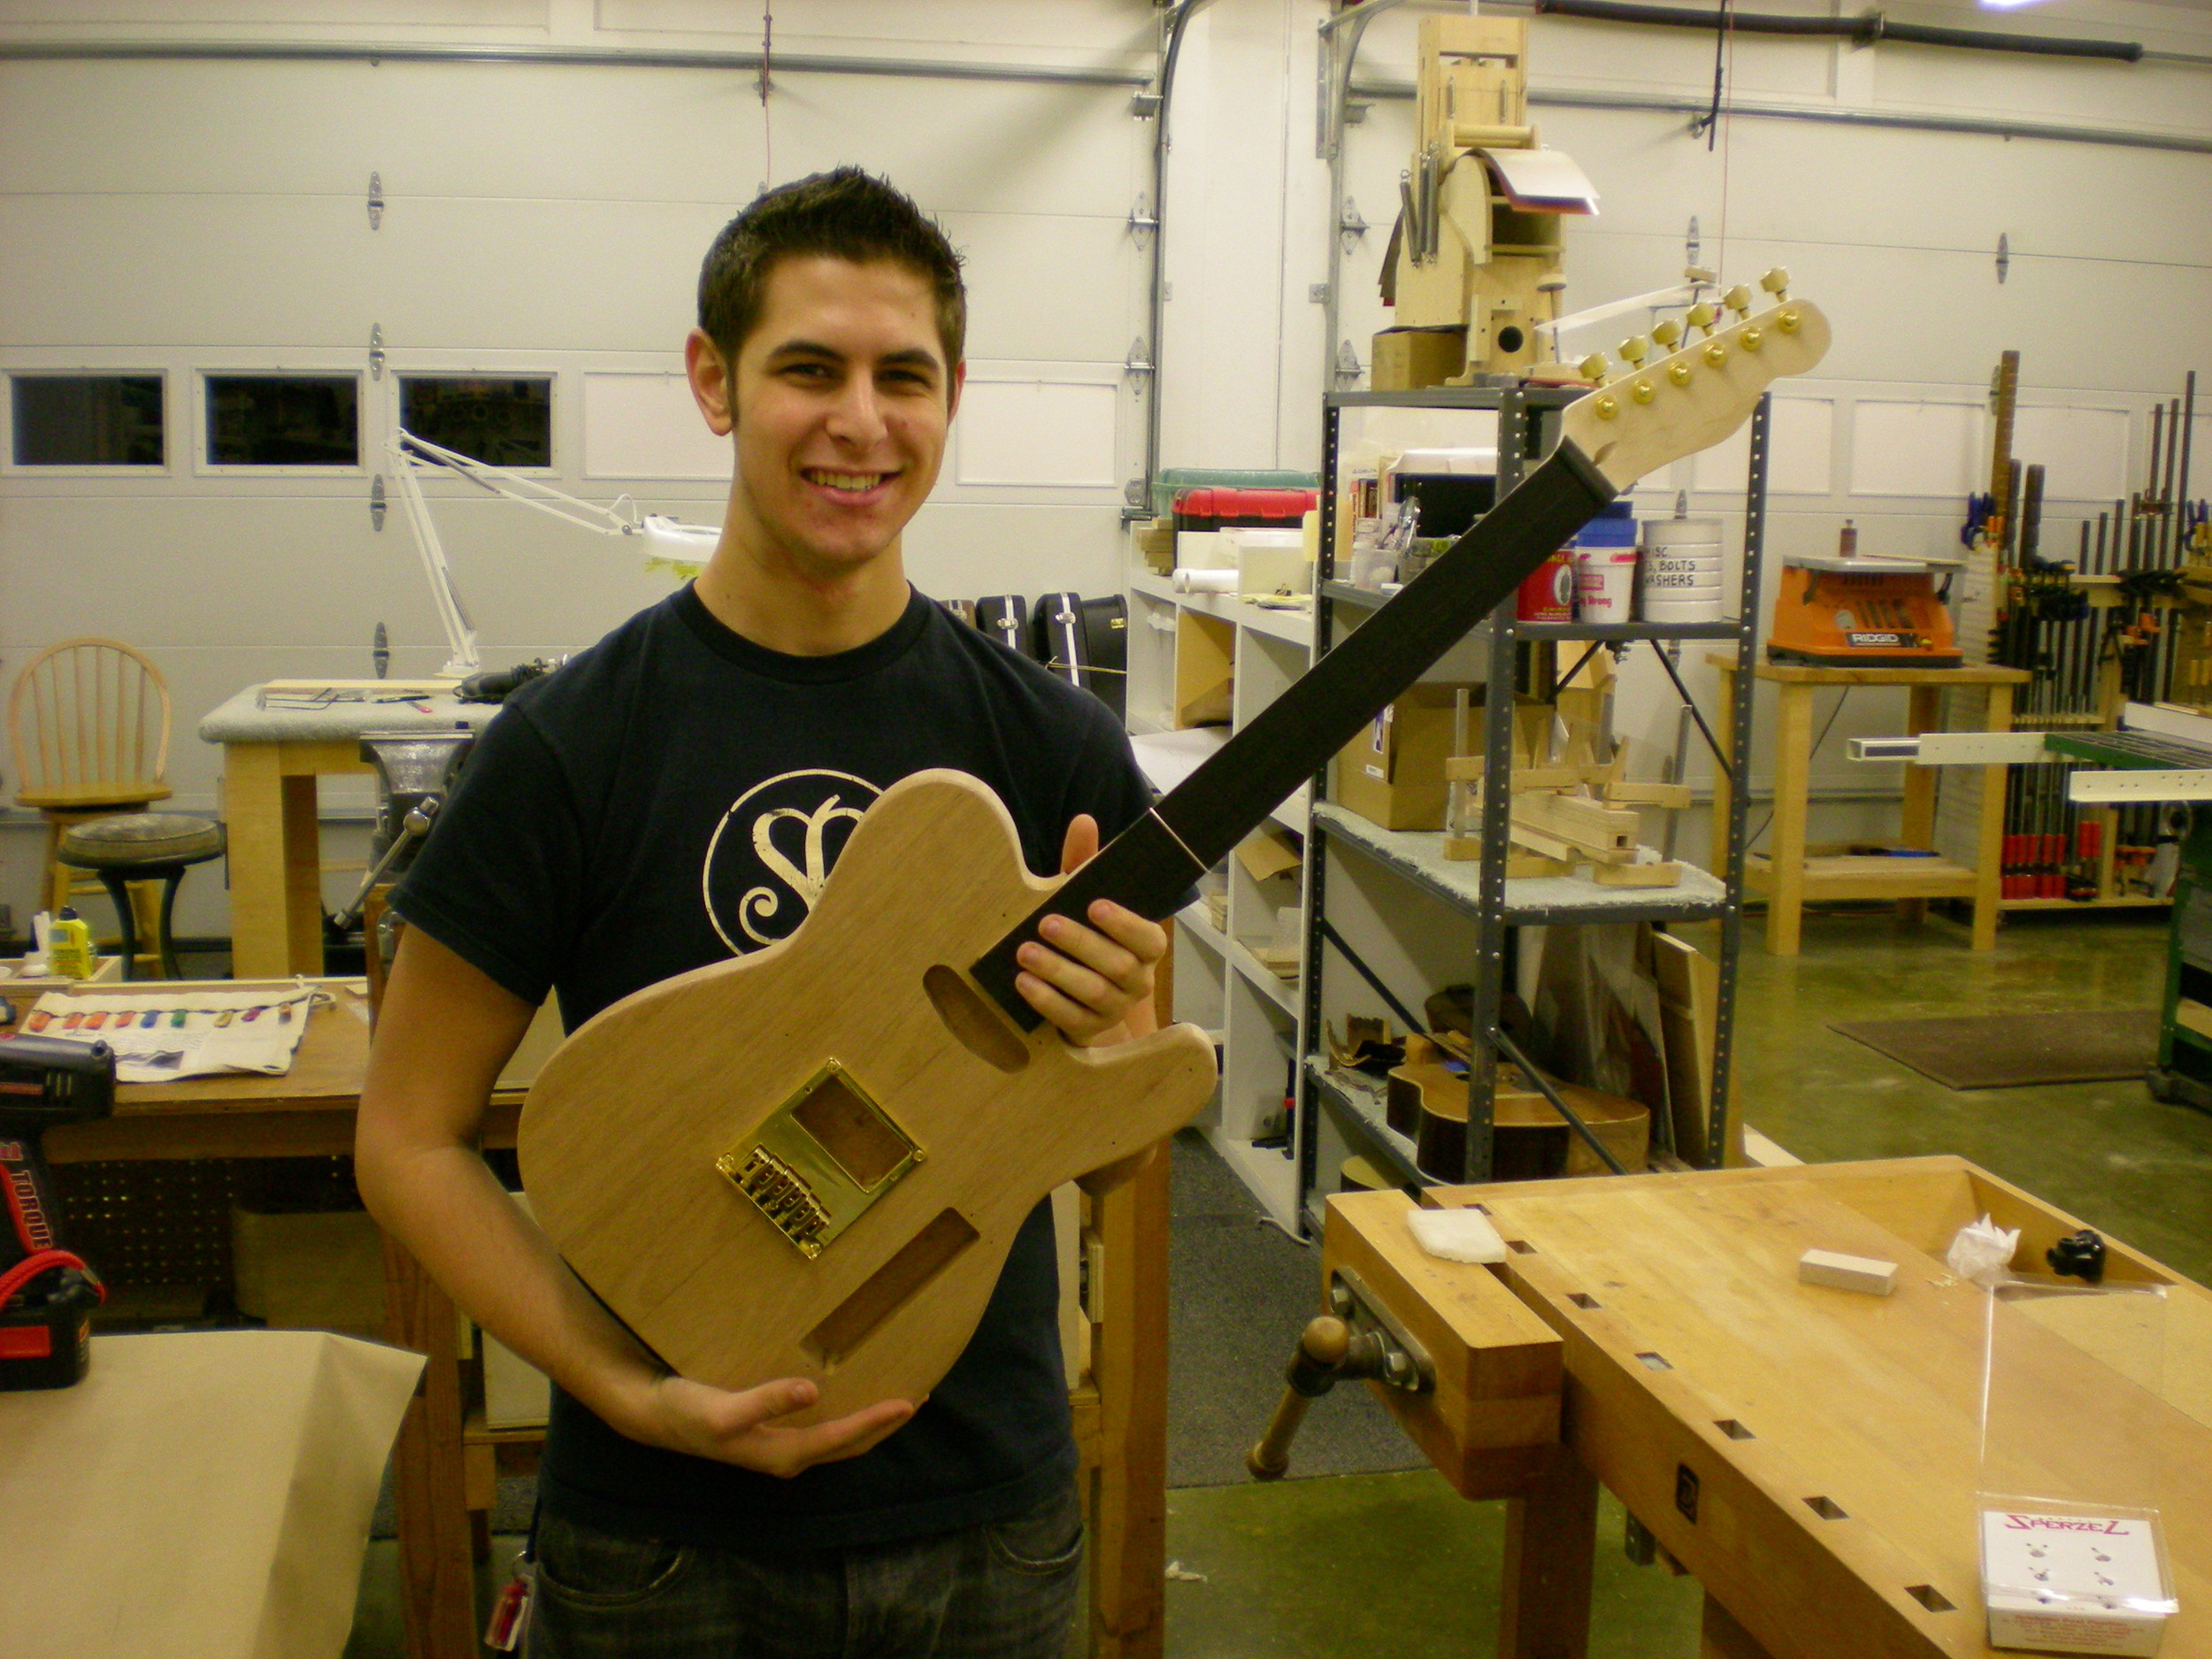 Clay with his Tele in progress